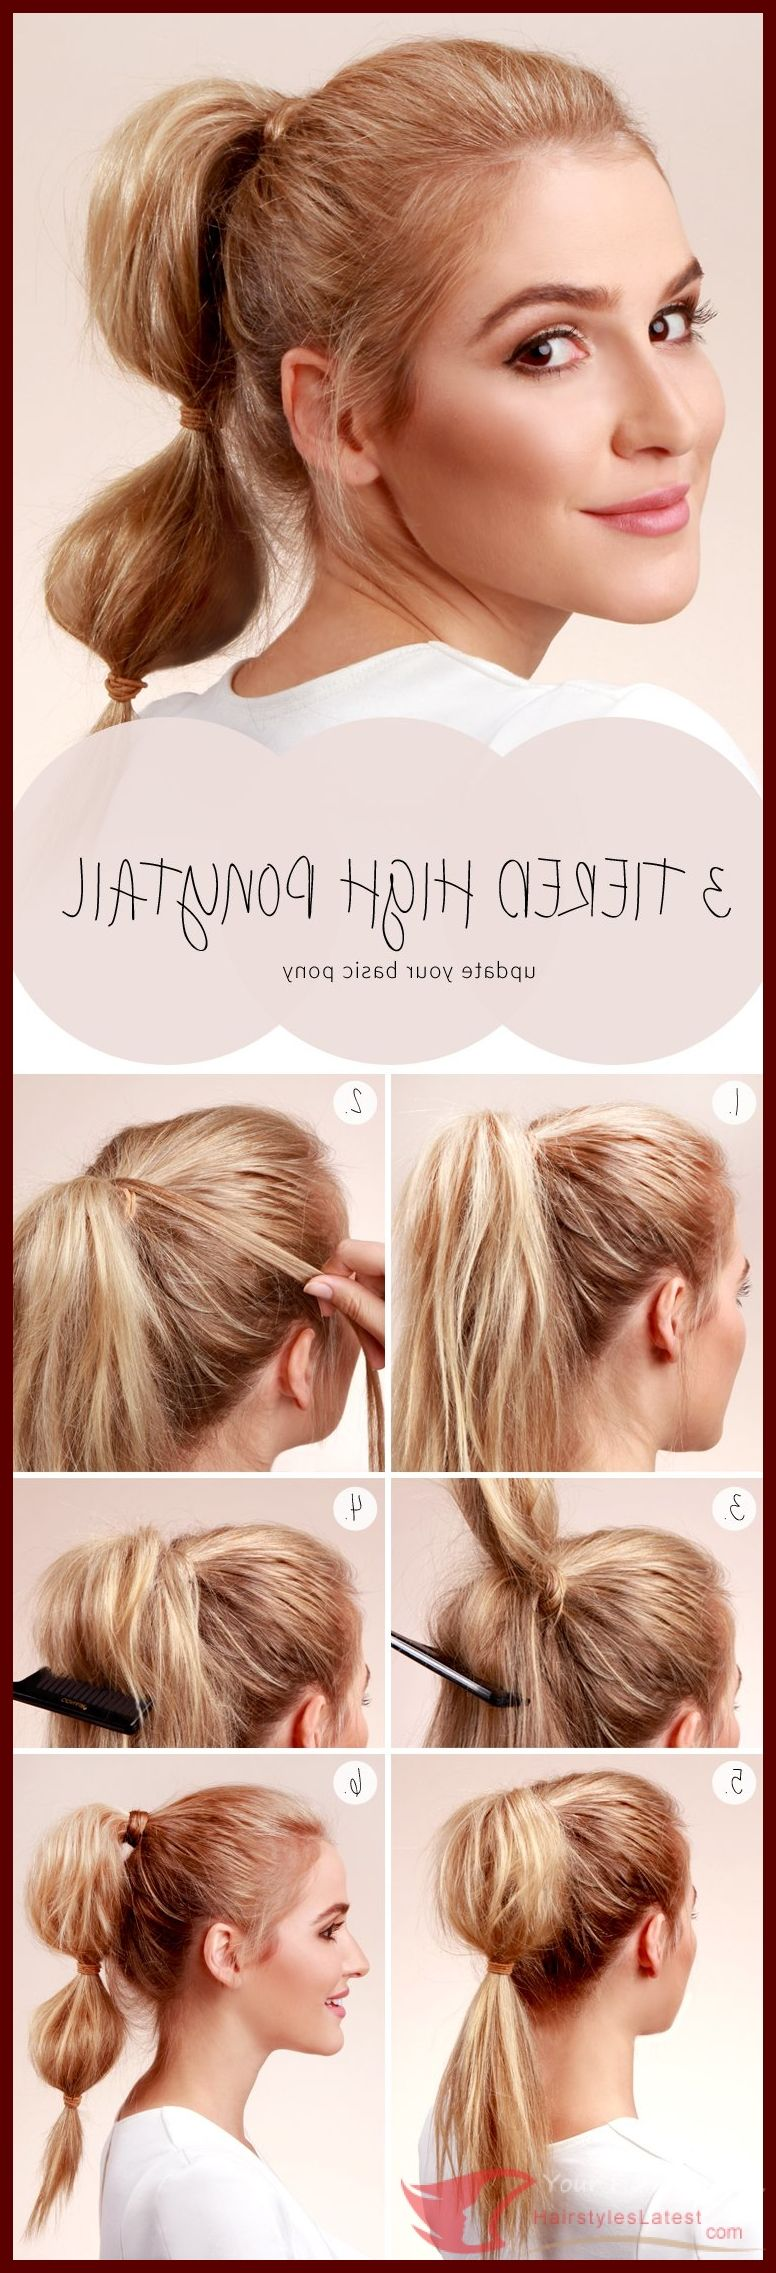 Learn To Make New Hairstyles  Hair